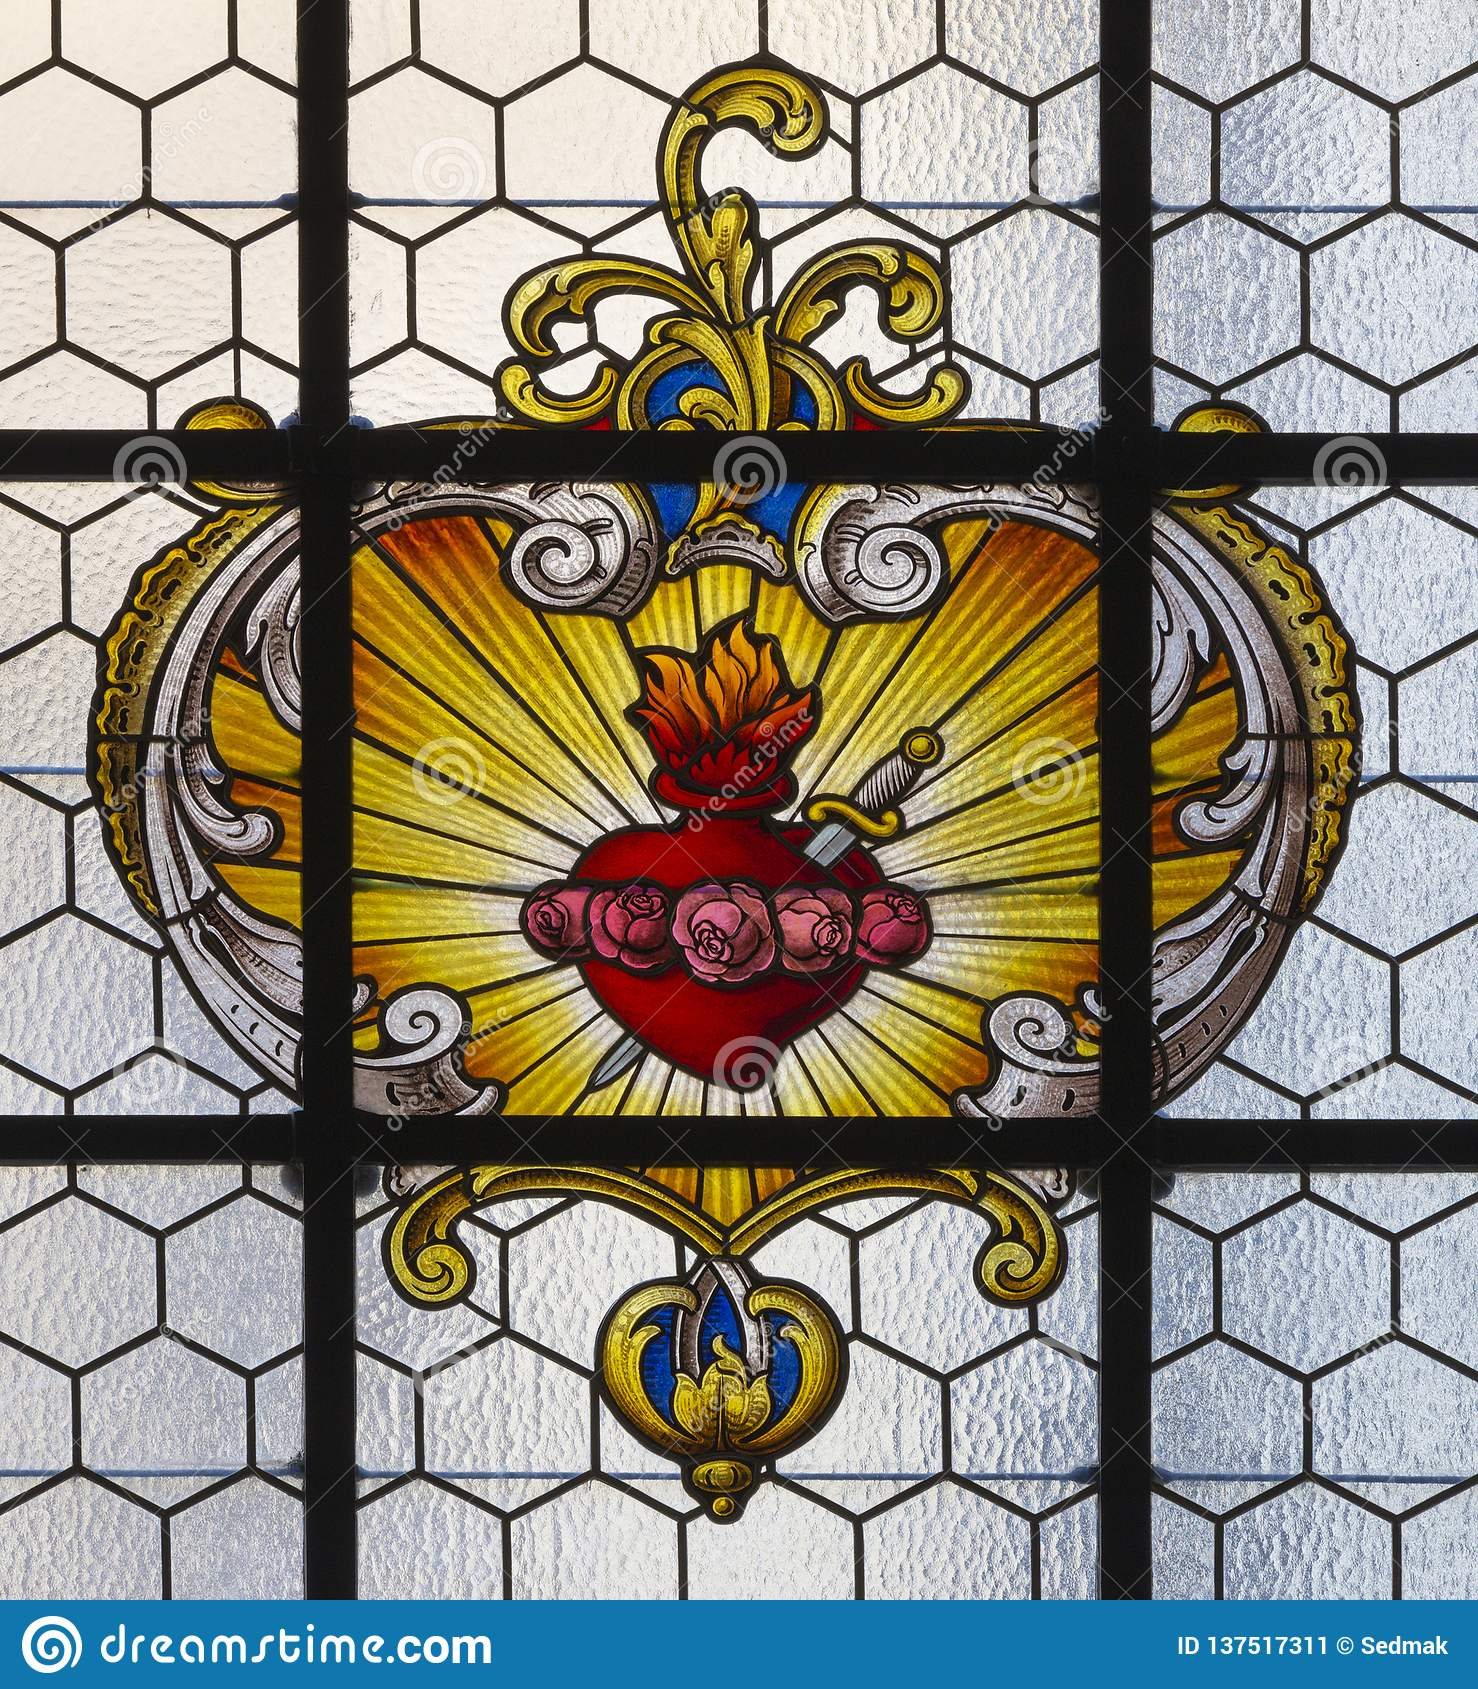 PRAGUE, CZECH REPUBLIC - OCTOBER 16, 2018: The baroque heart of Virgin Mary in the stained glass in church kostel Svatého Havla